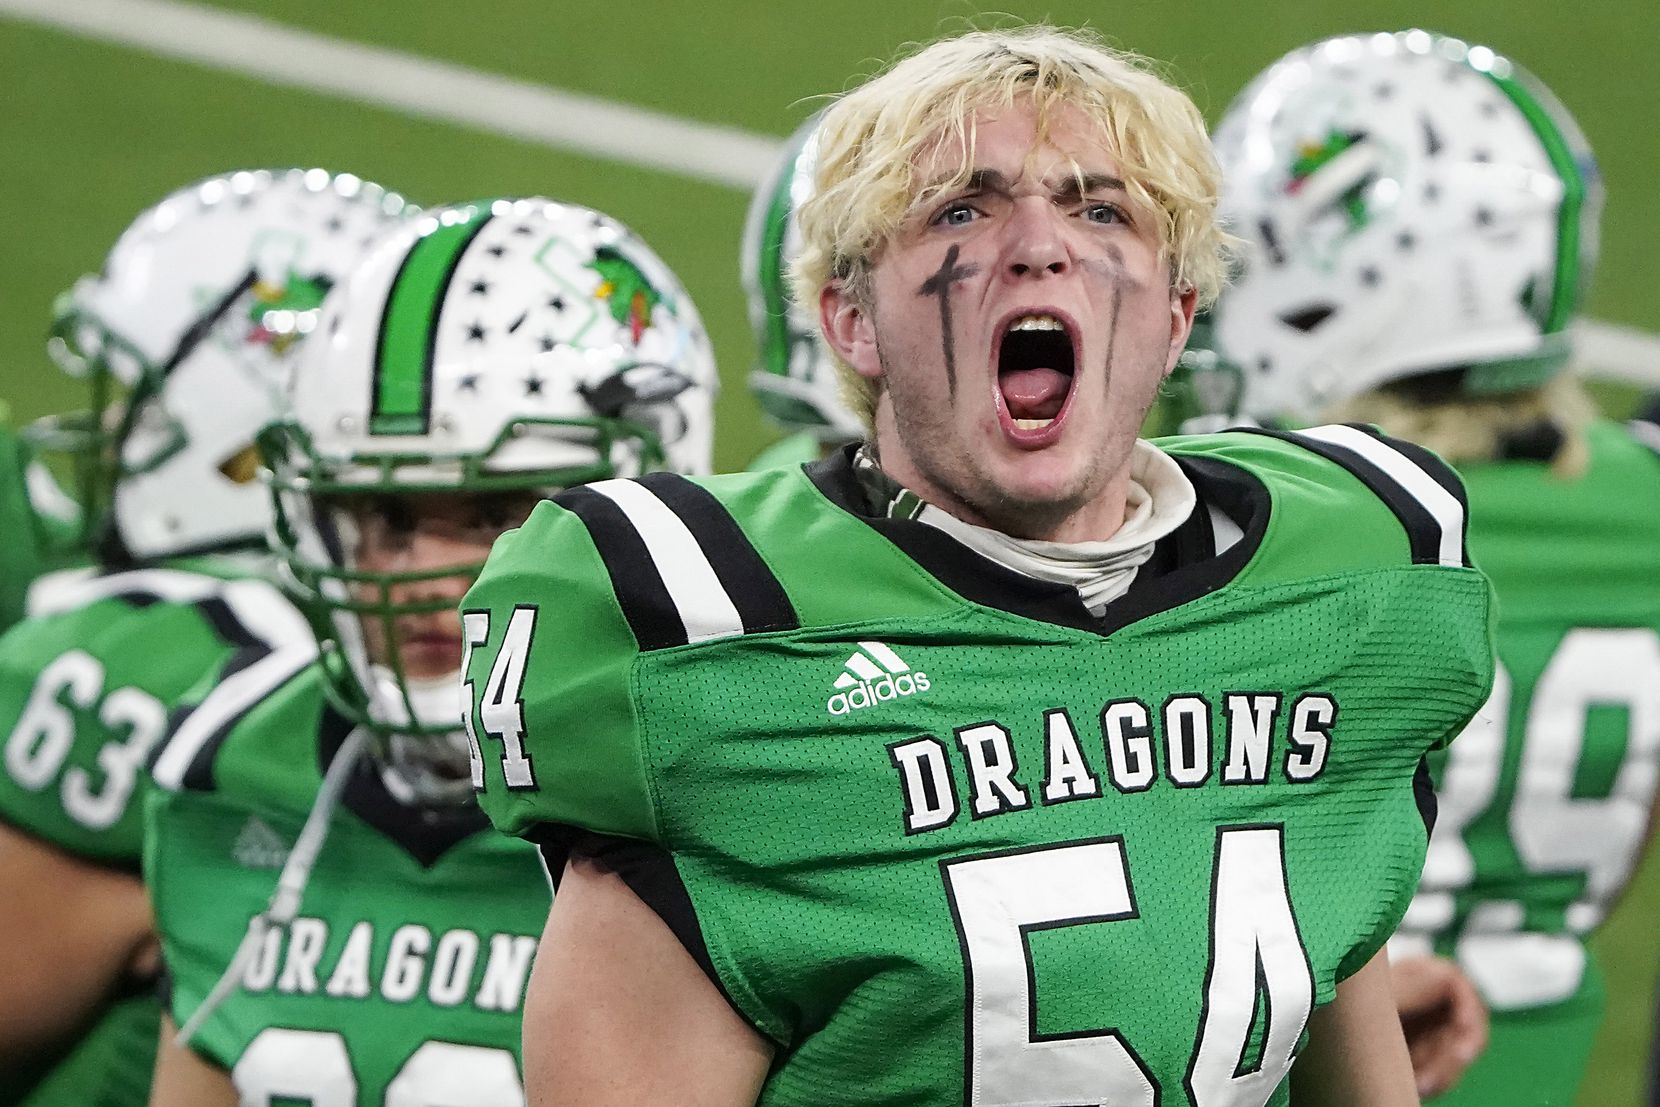 Southlake Carroll defensive lineman Jim Cates (54) yells to try and fire up the crowd during the third quarter of the Class 6A Division I state football championship game against Austin Westlake at AT&T Stadium on Saturday, Jan. 16, 2021, in Arlington, Texas.